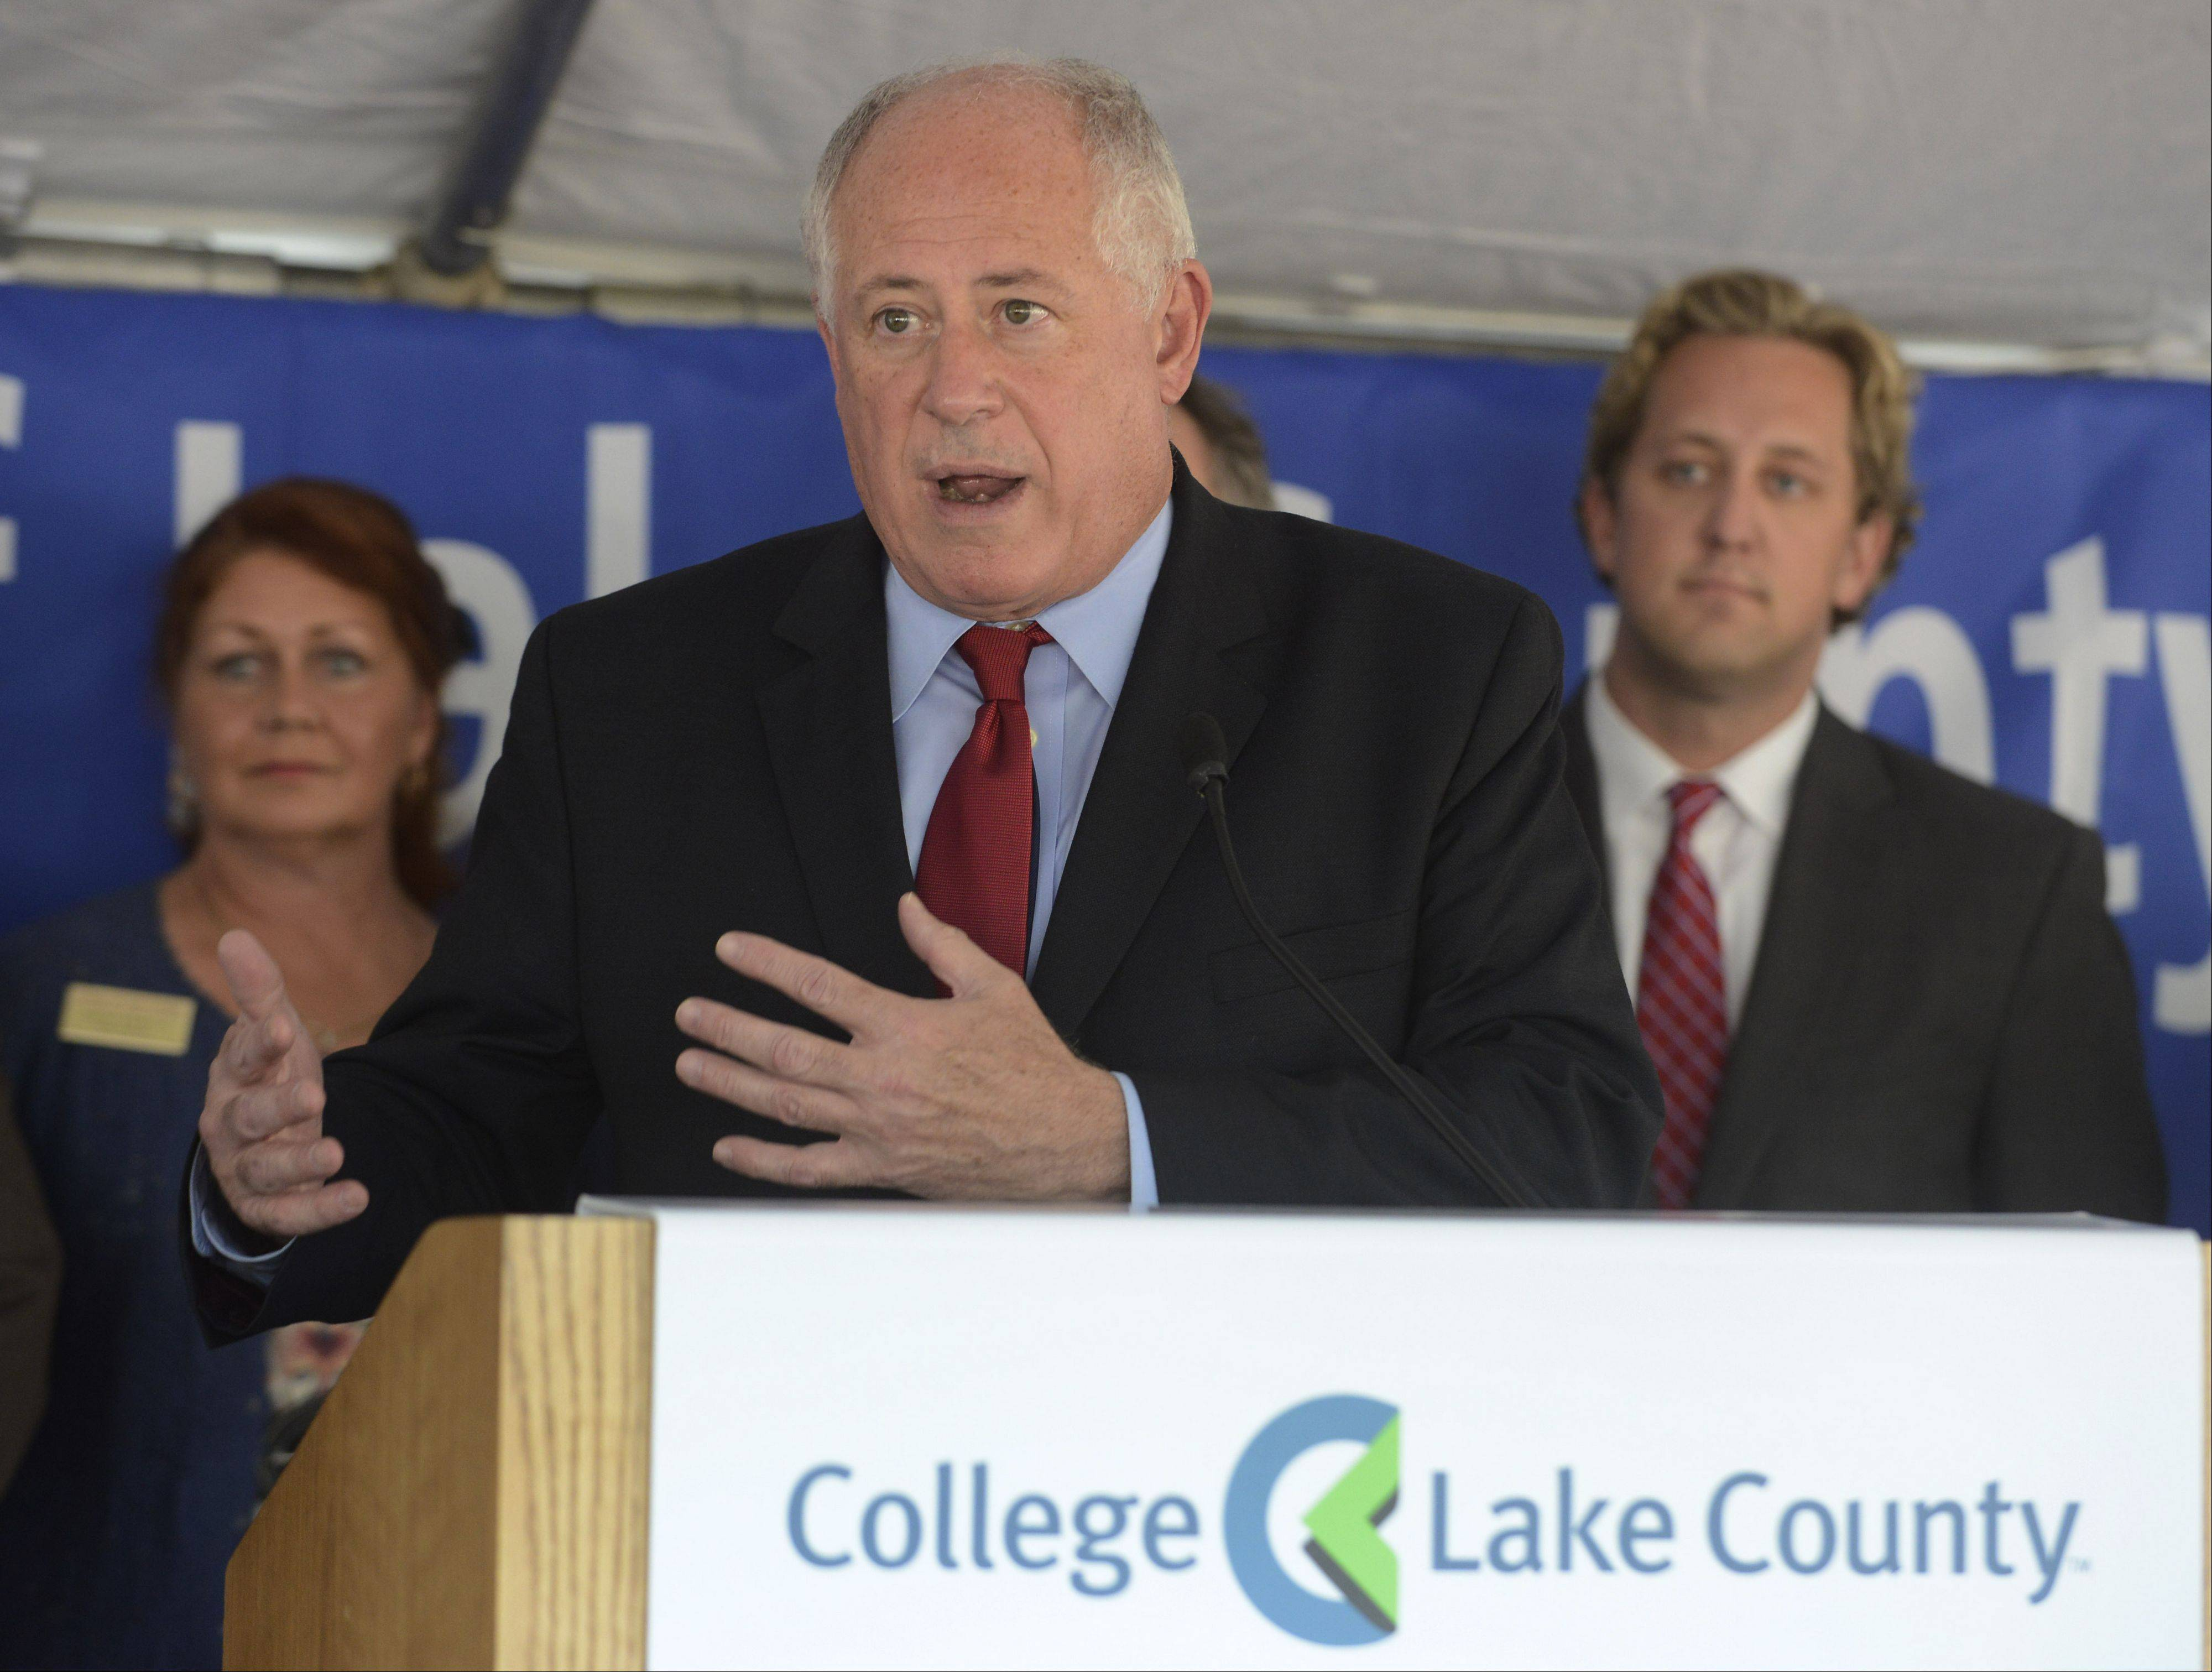 Gov. Pat Quinn announces Thursday the state will provide $36 million toward expansion of College of Lake County's downtown Waukegan campus.